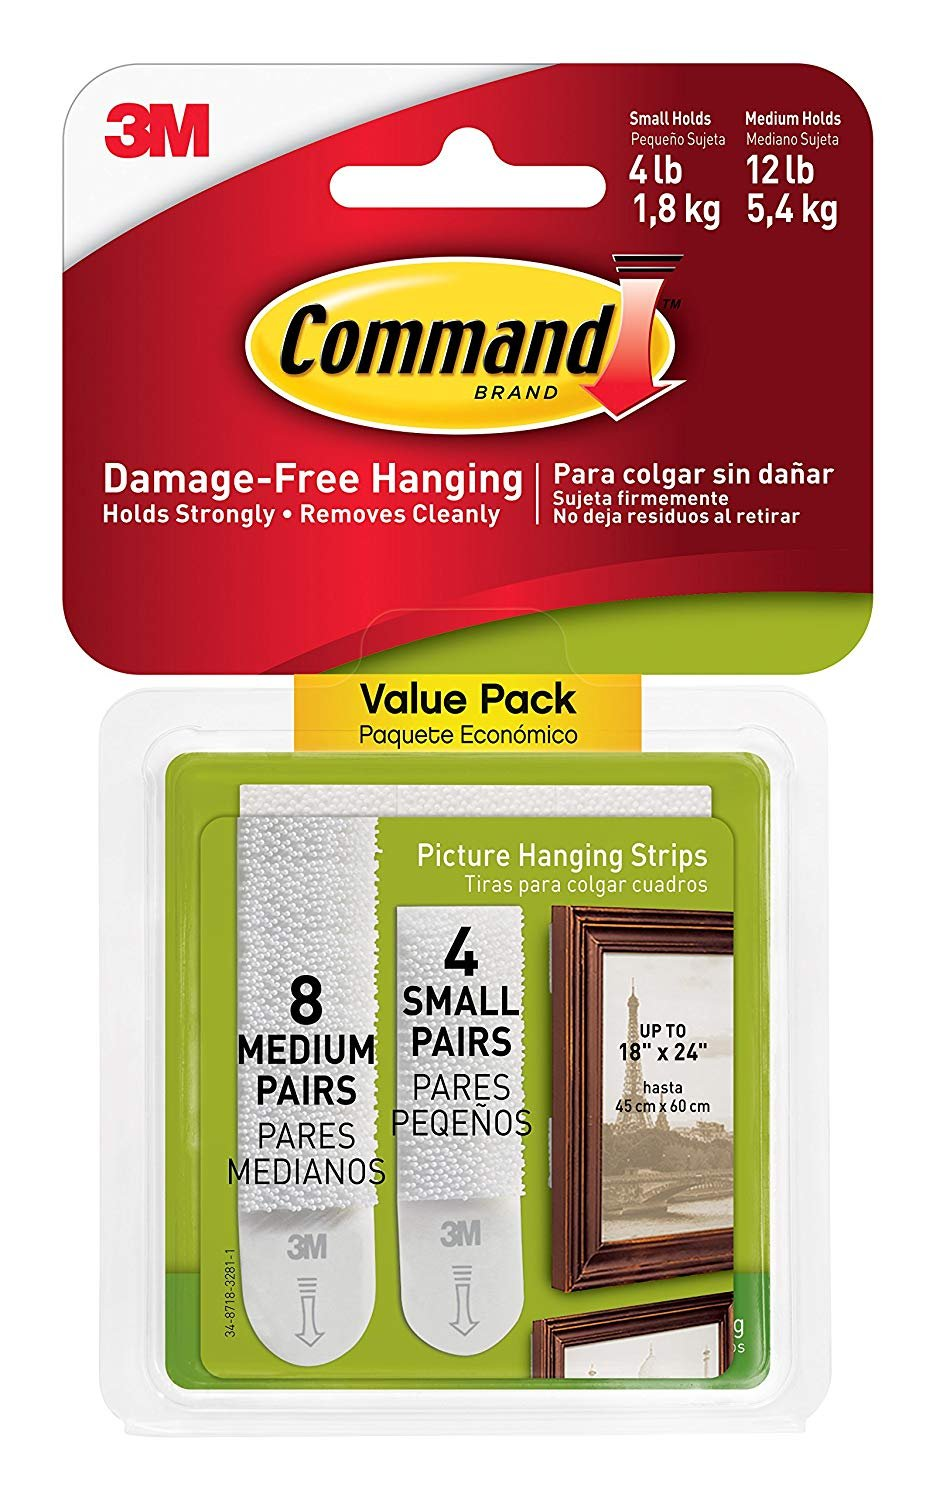 Command Picture Hanging Strips B7MS9 4 Small 8 Medium 4 Pack